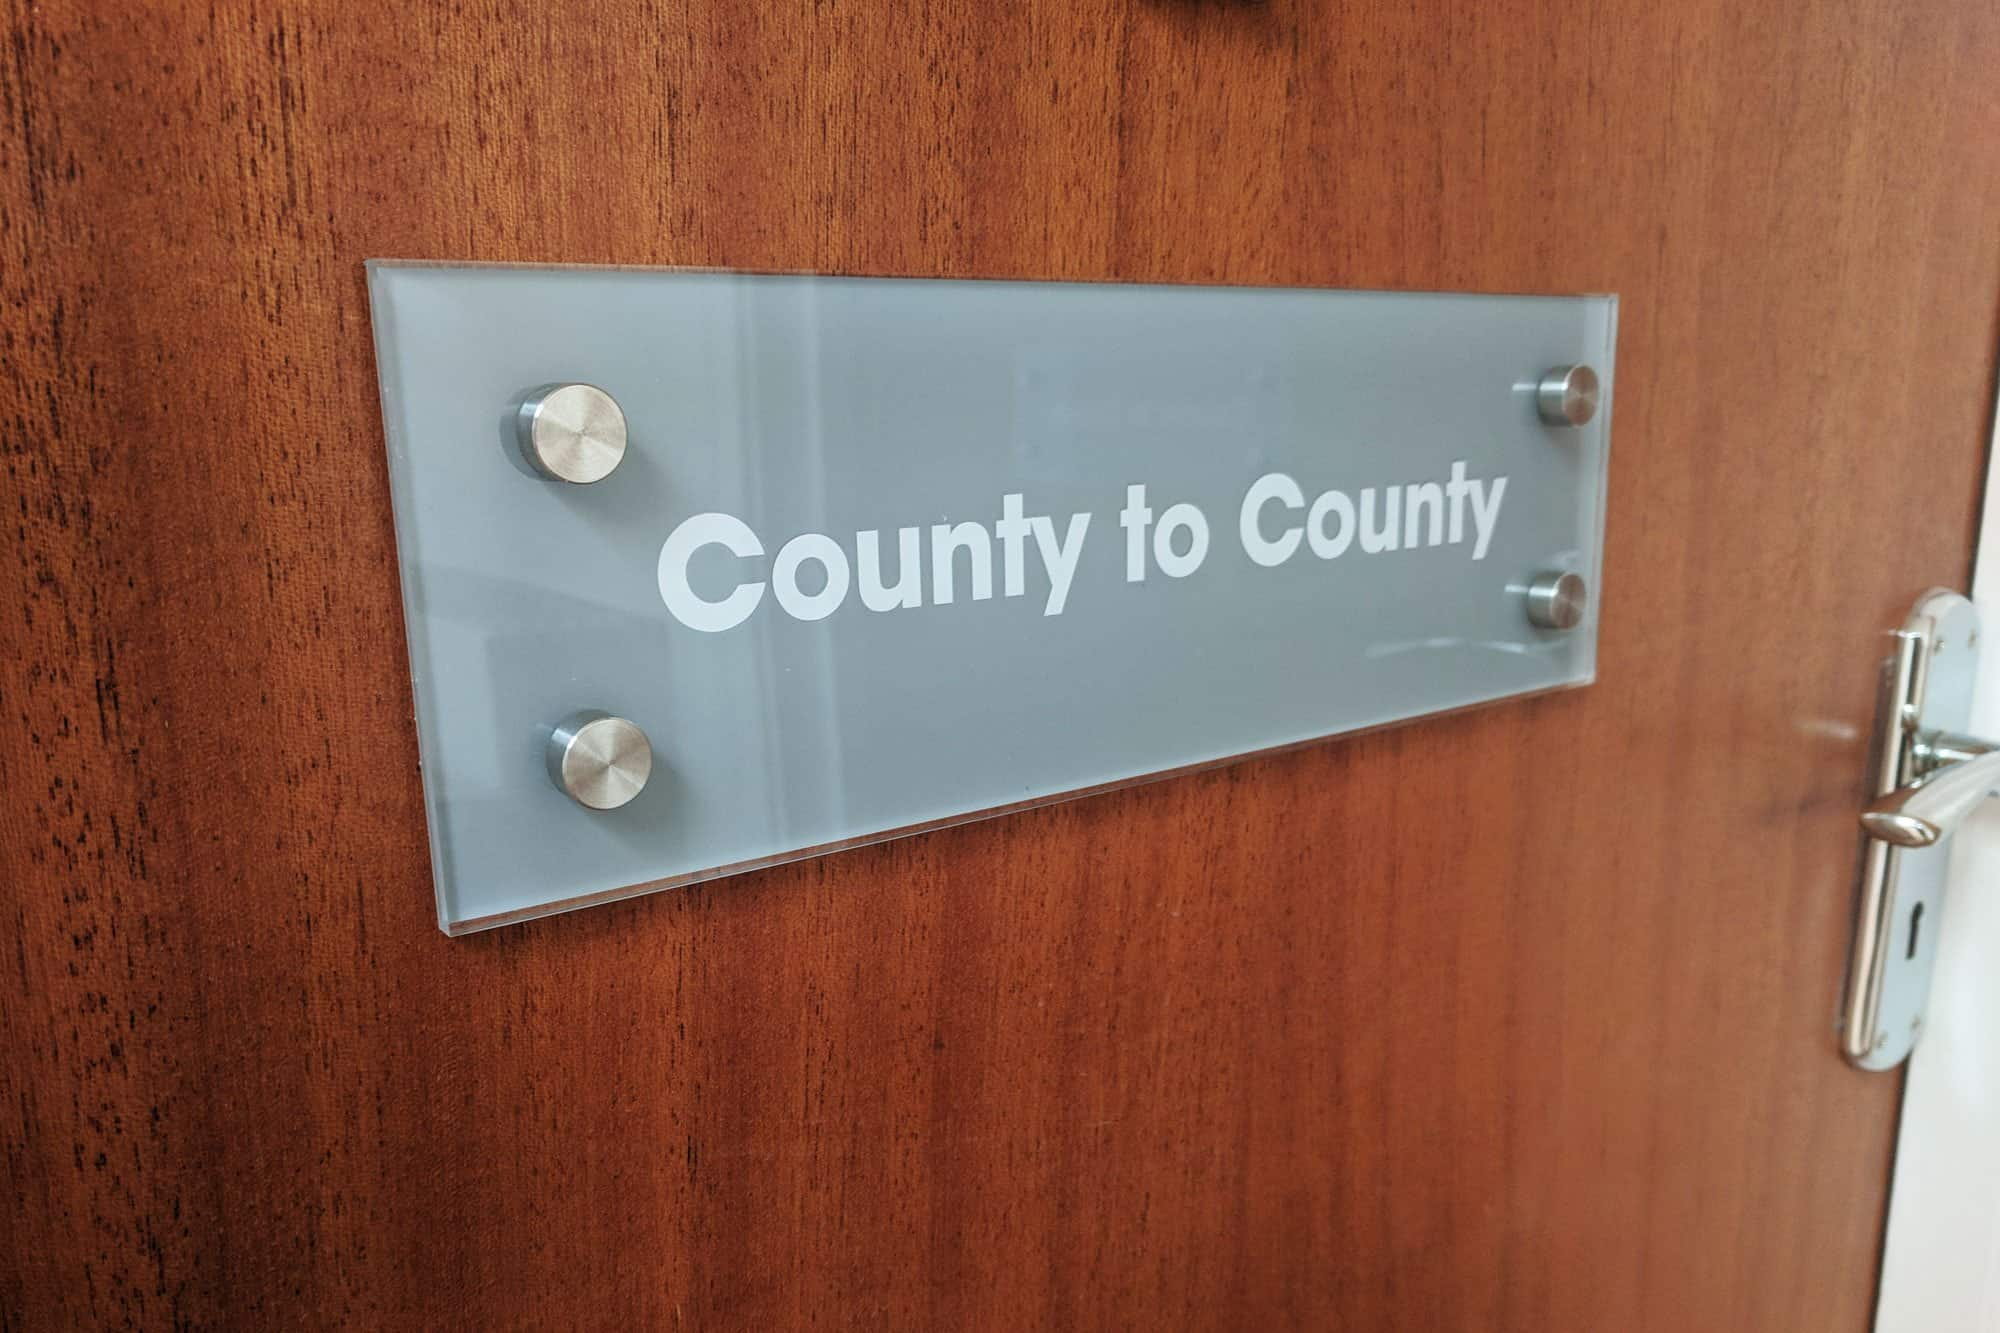 County to County Signs